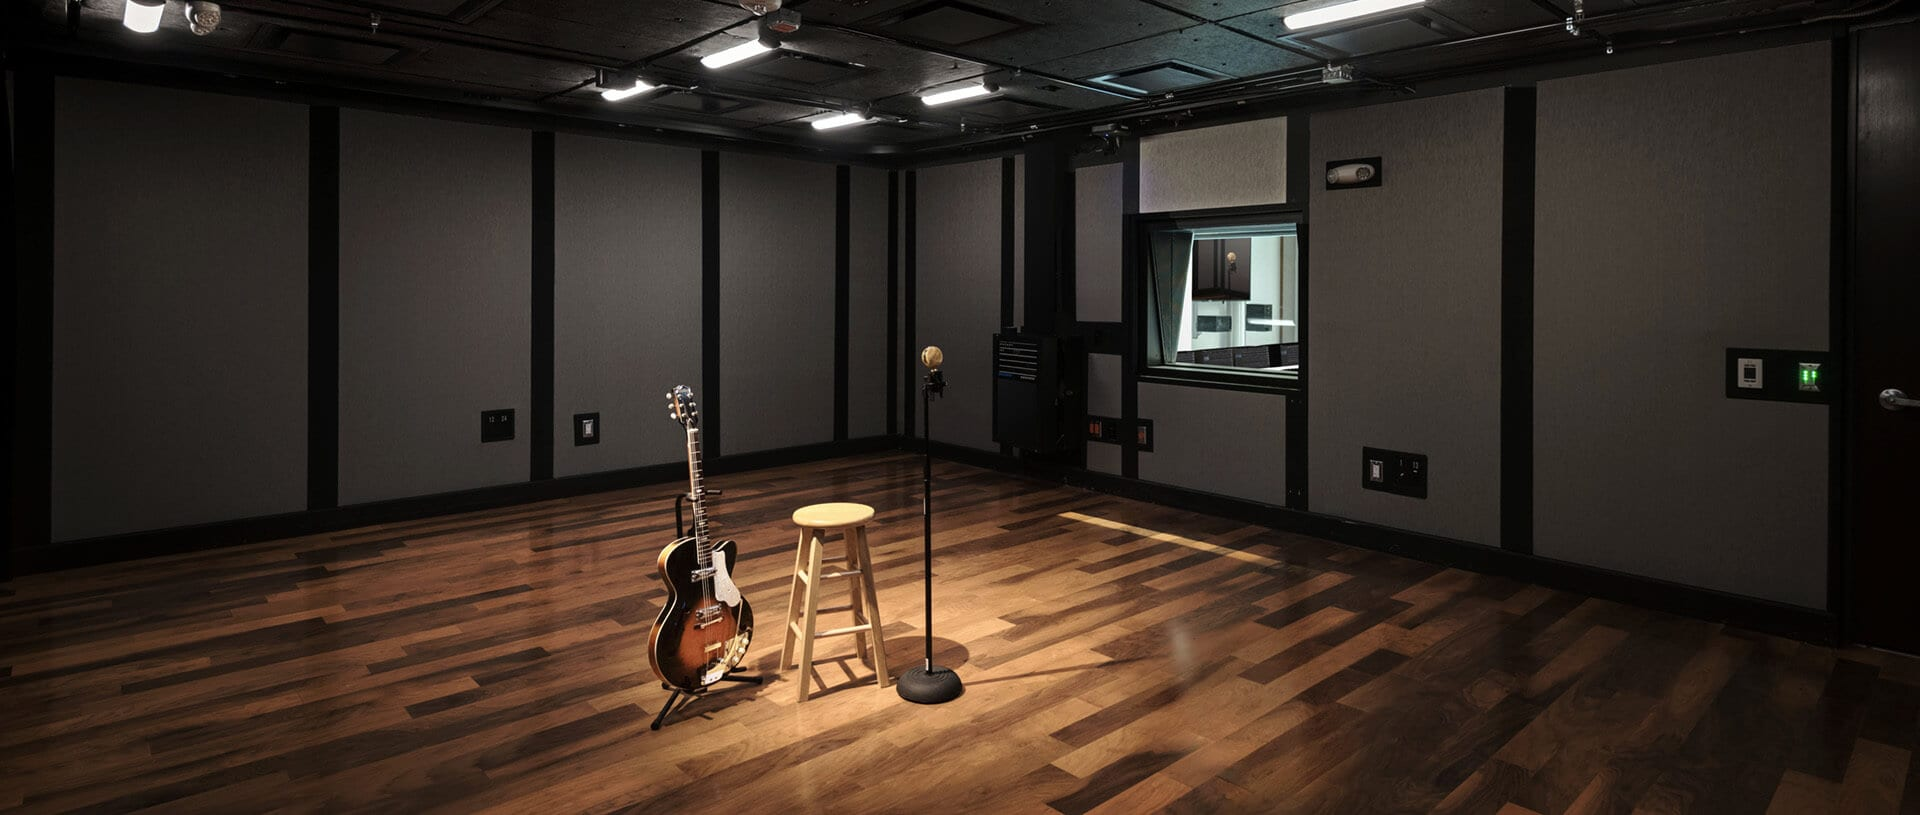 Things You Do not Need in Your Studio